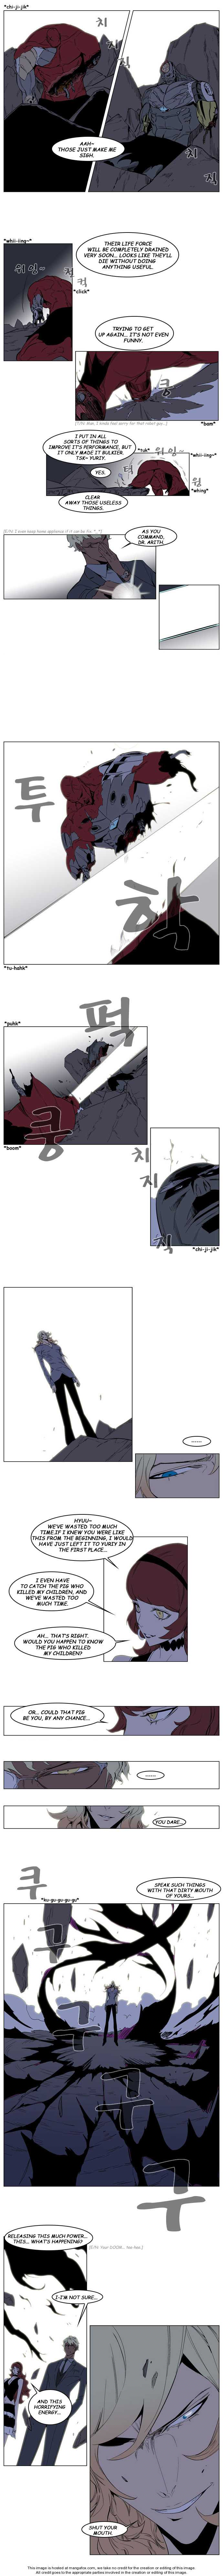 Noblesse 149 Page 2